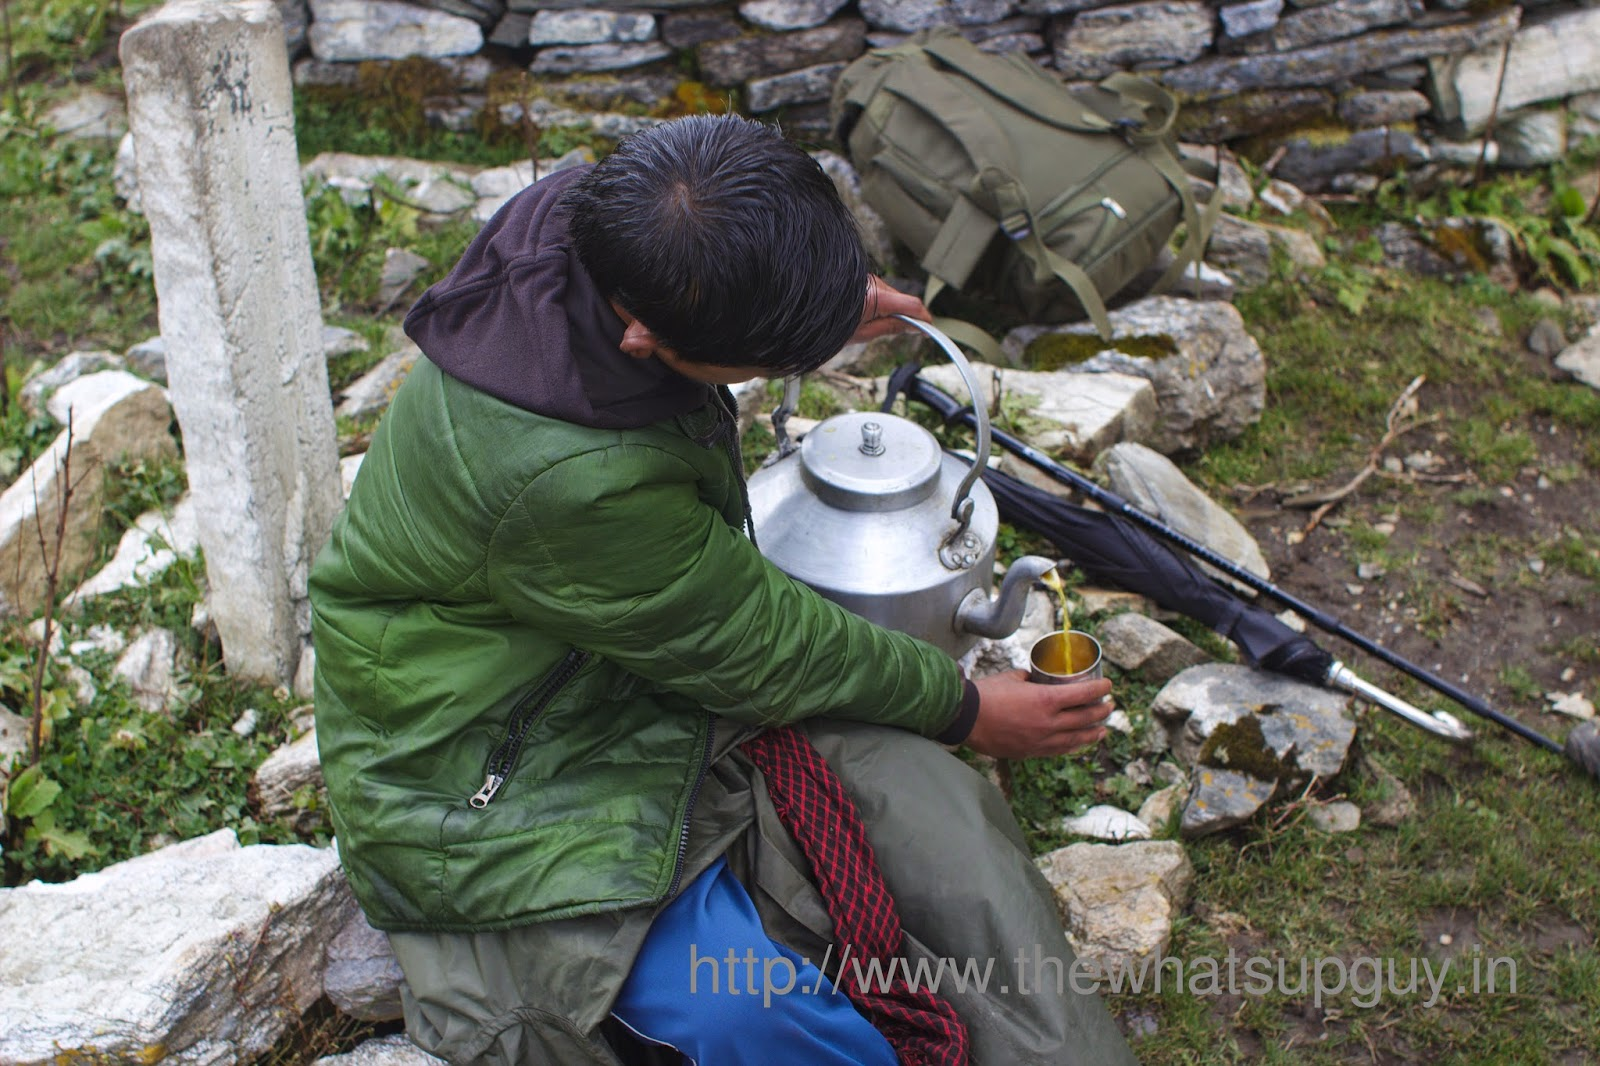 Ali-Bugyal-Rasna-Roopkund-Trek-With-India-Hikes-Day-2